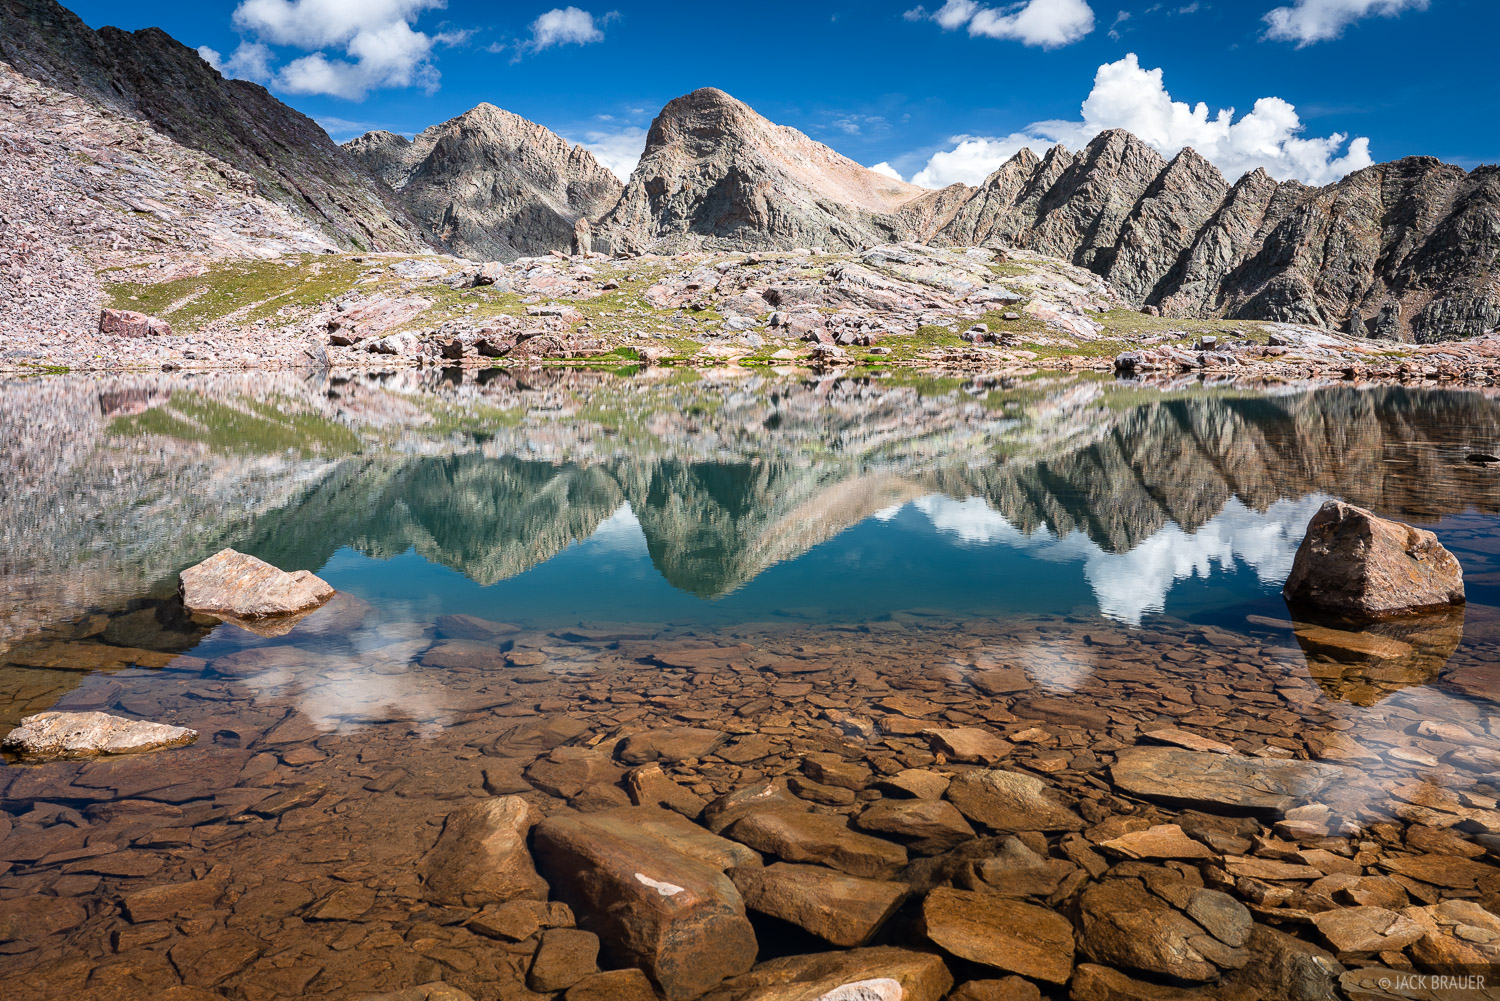 Colorado, Grenadier Range, San Juan Mountains, Trinity Peaks, Weminuche Wilderness, reflection, photo